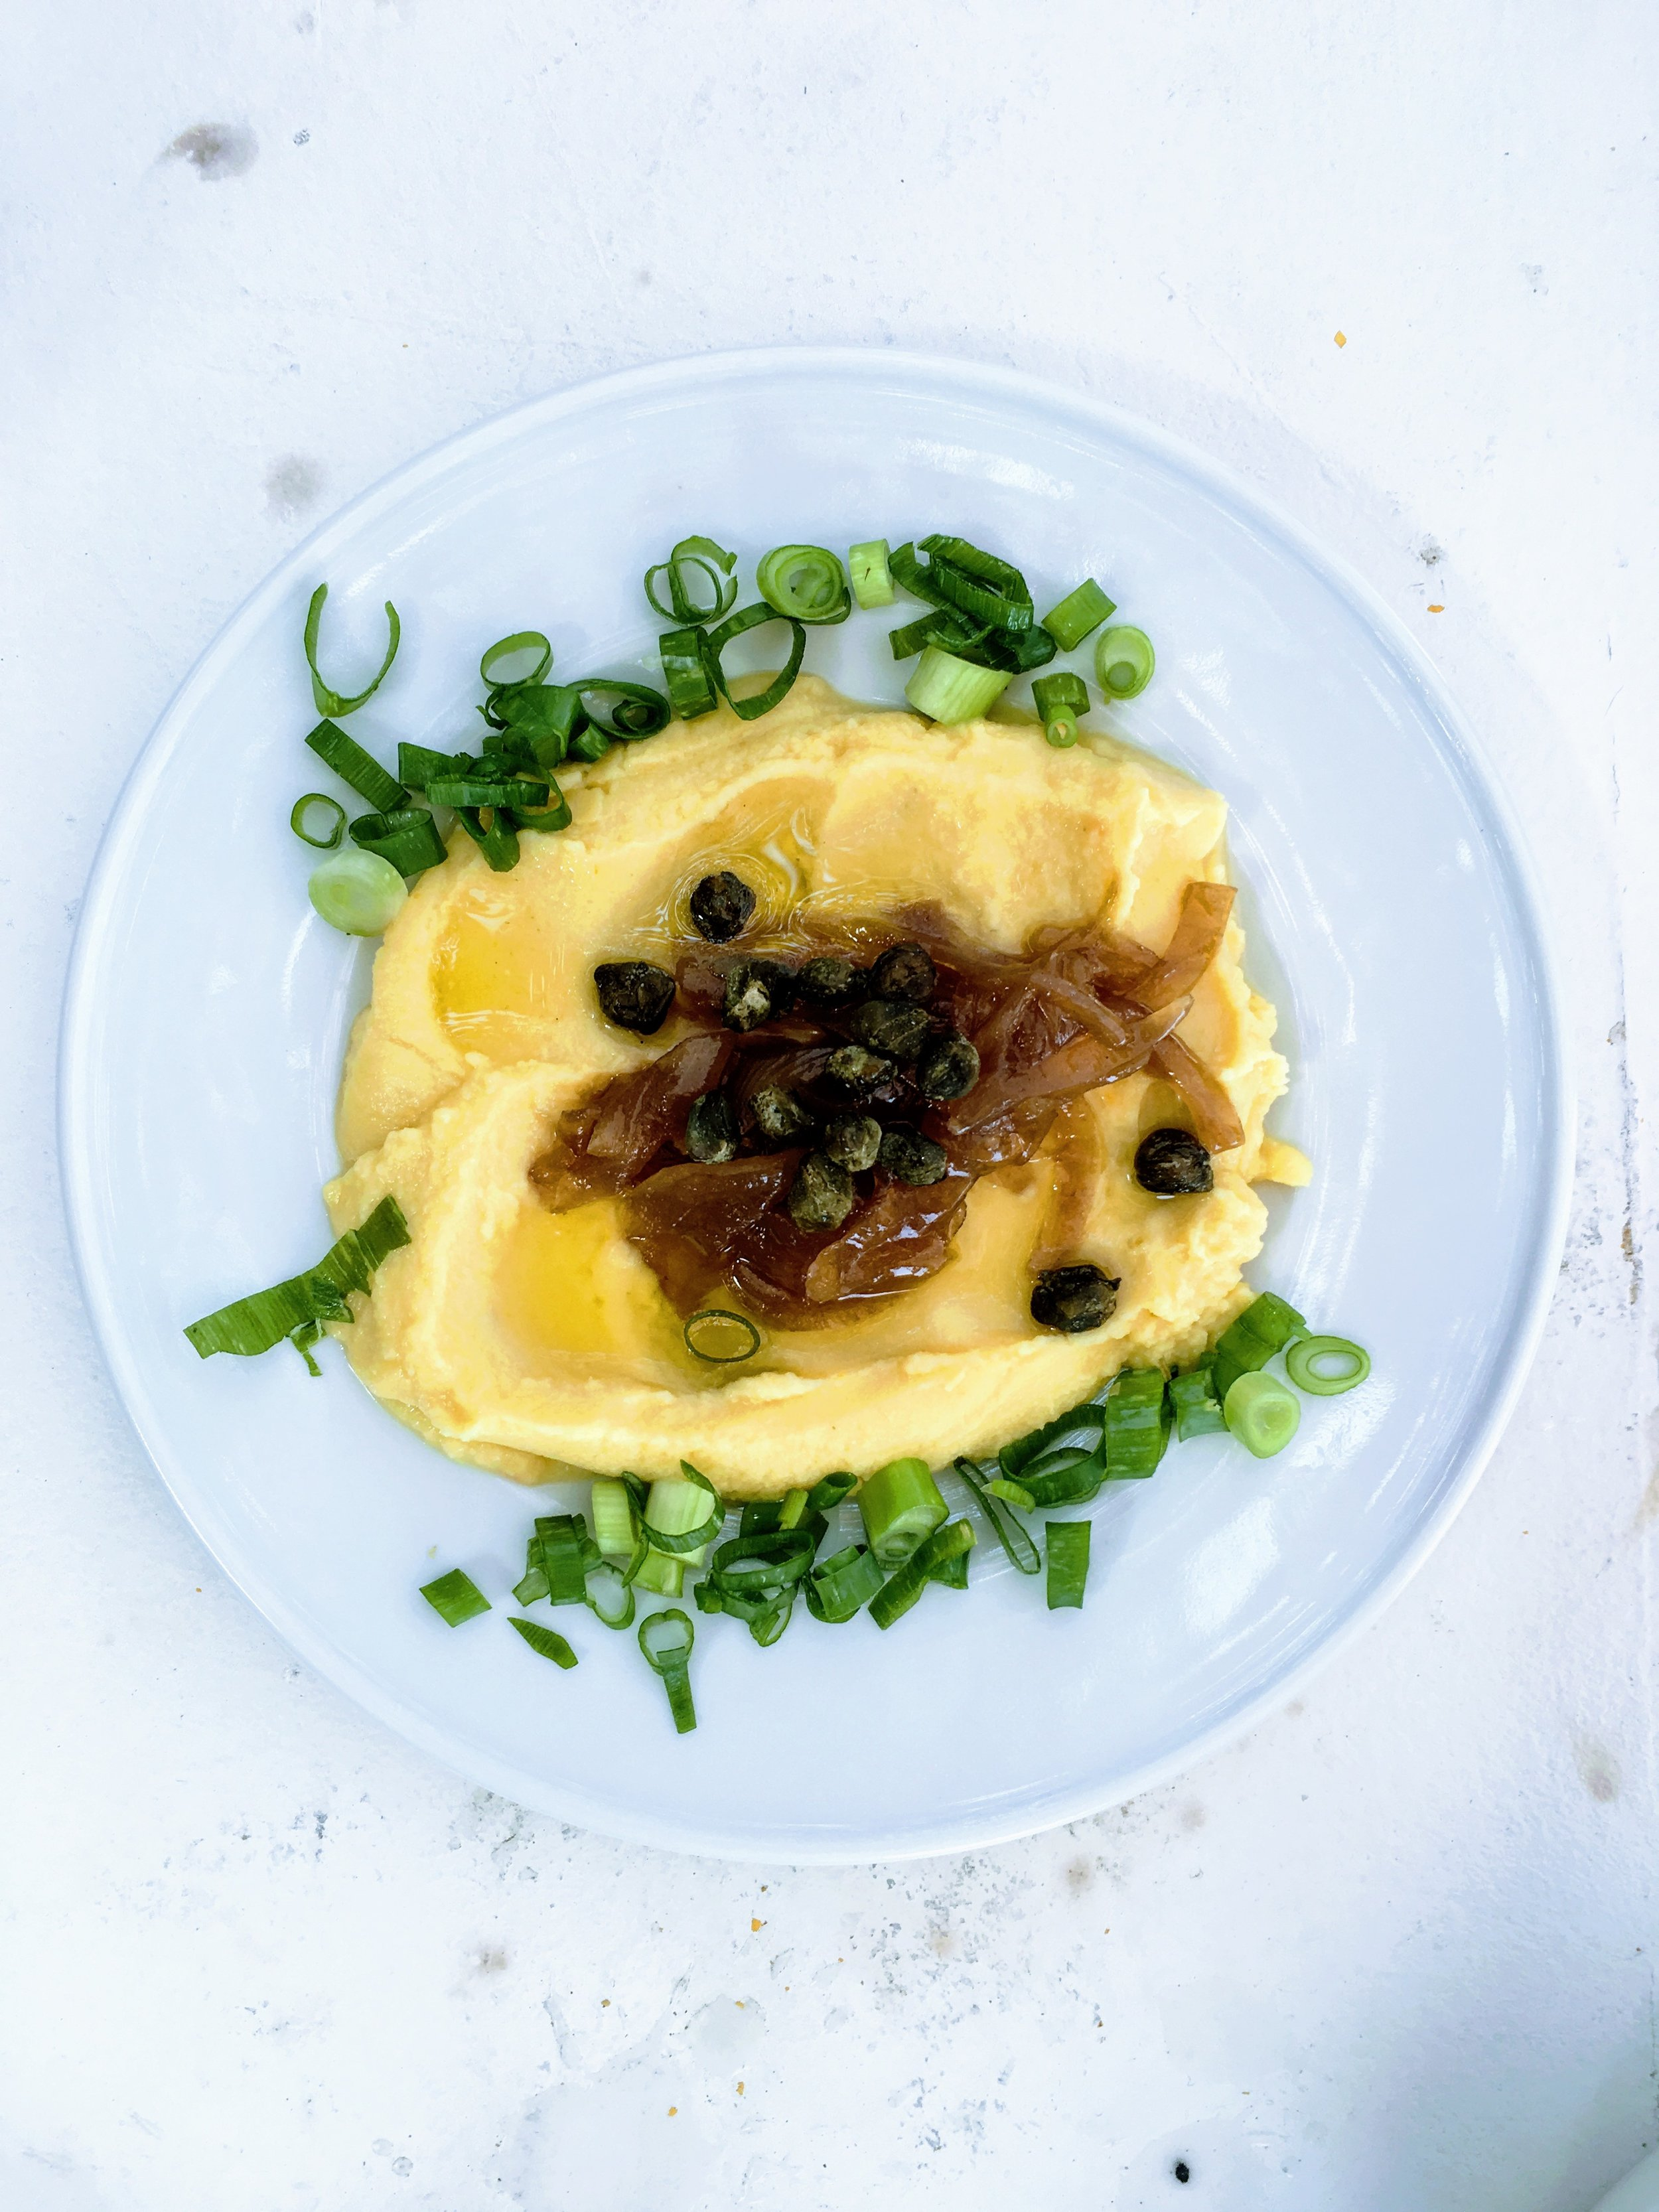 Fava spread with caramelized onions and capers